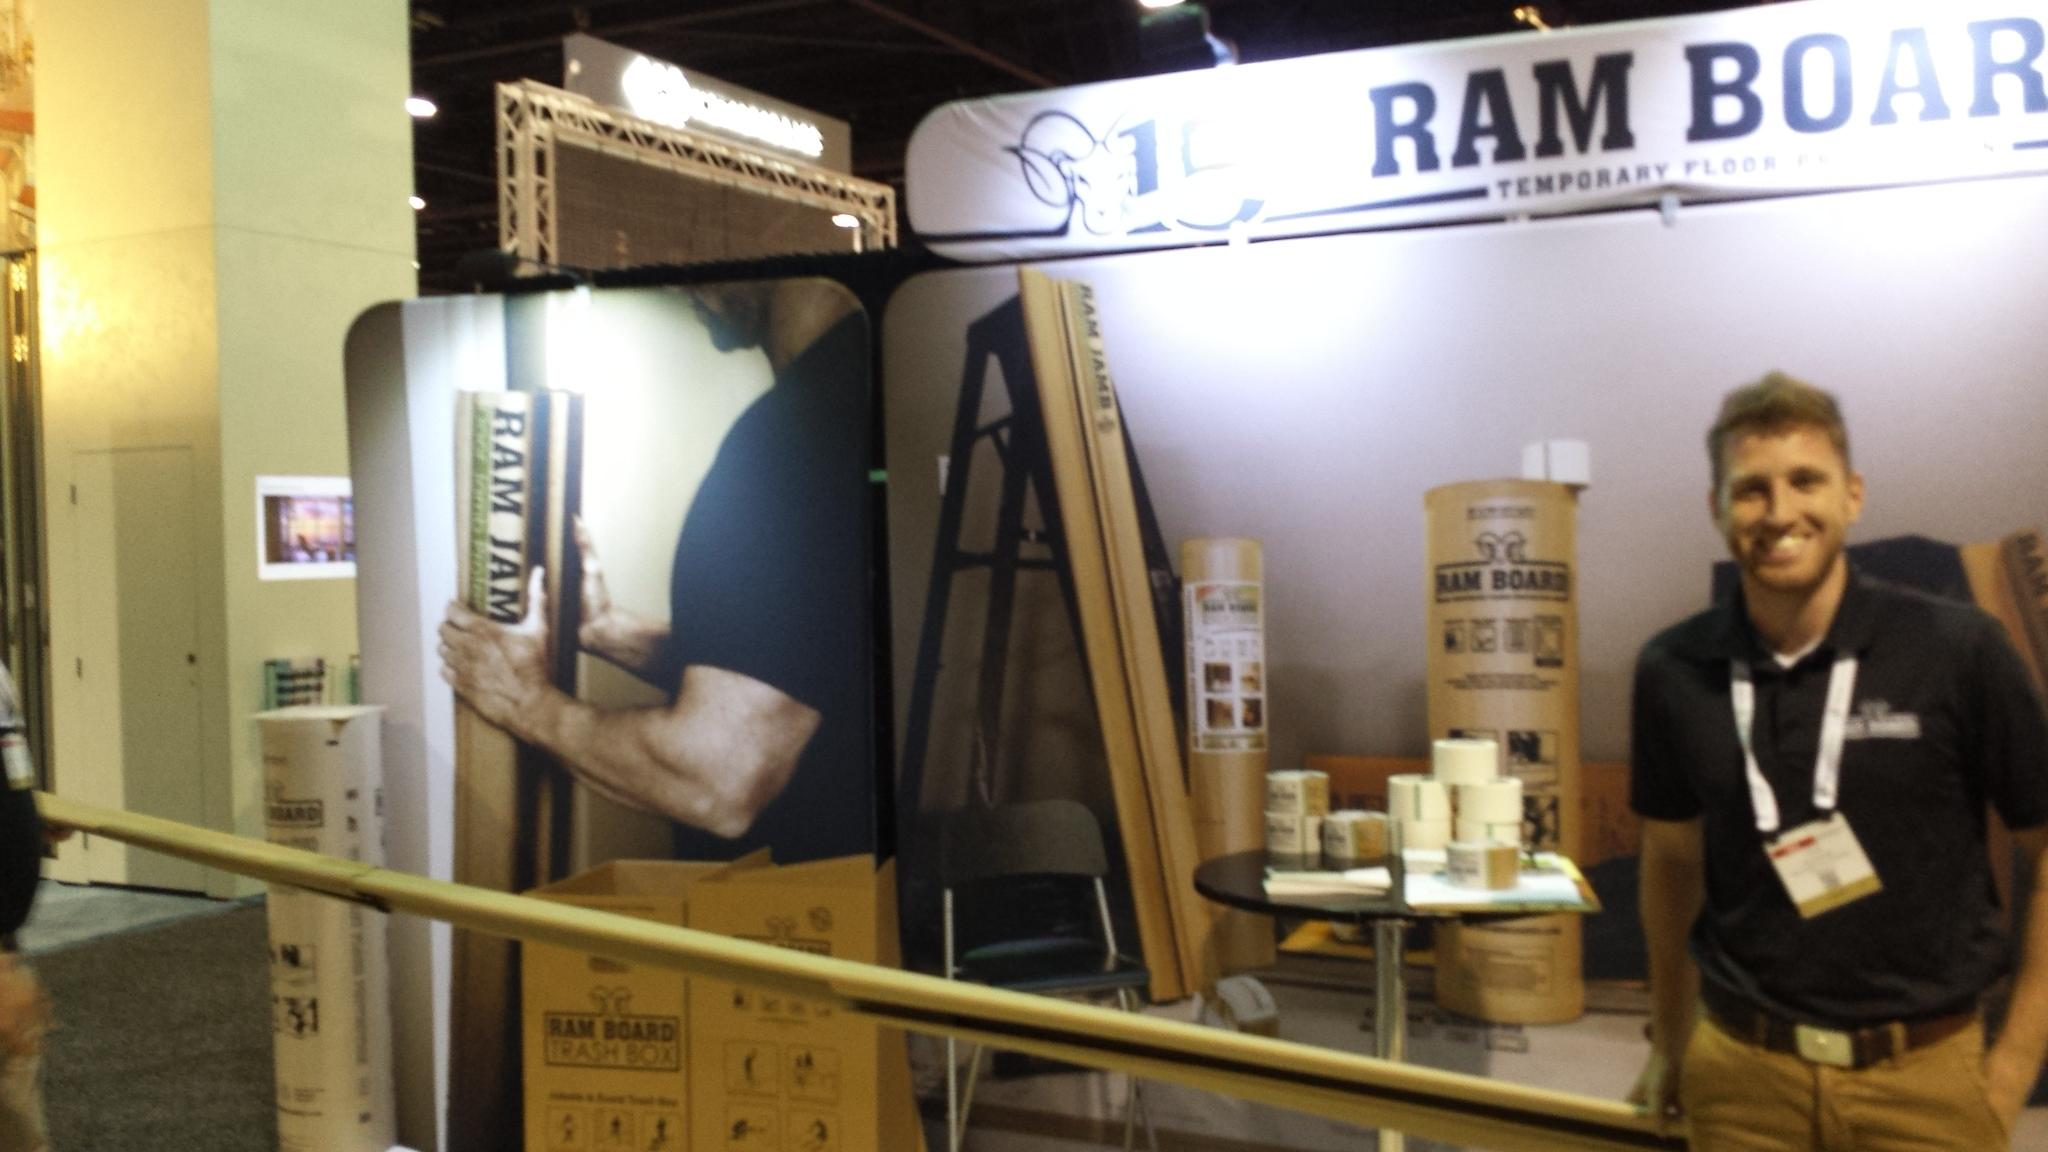 Ram Board Booth at AIA Convention 2015